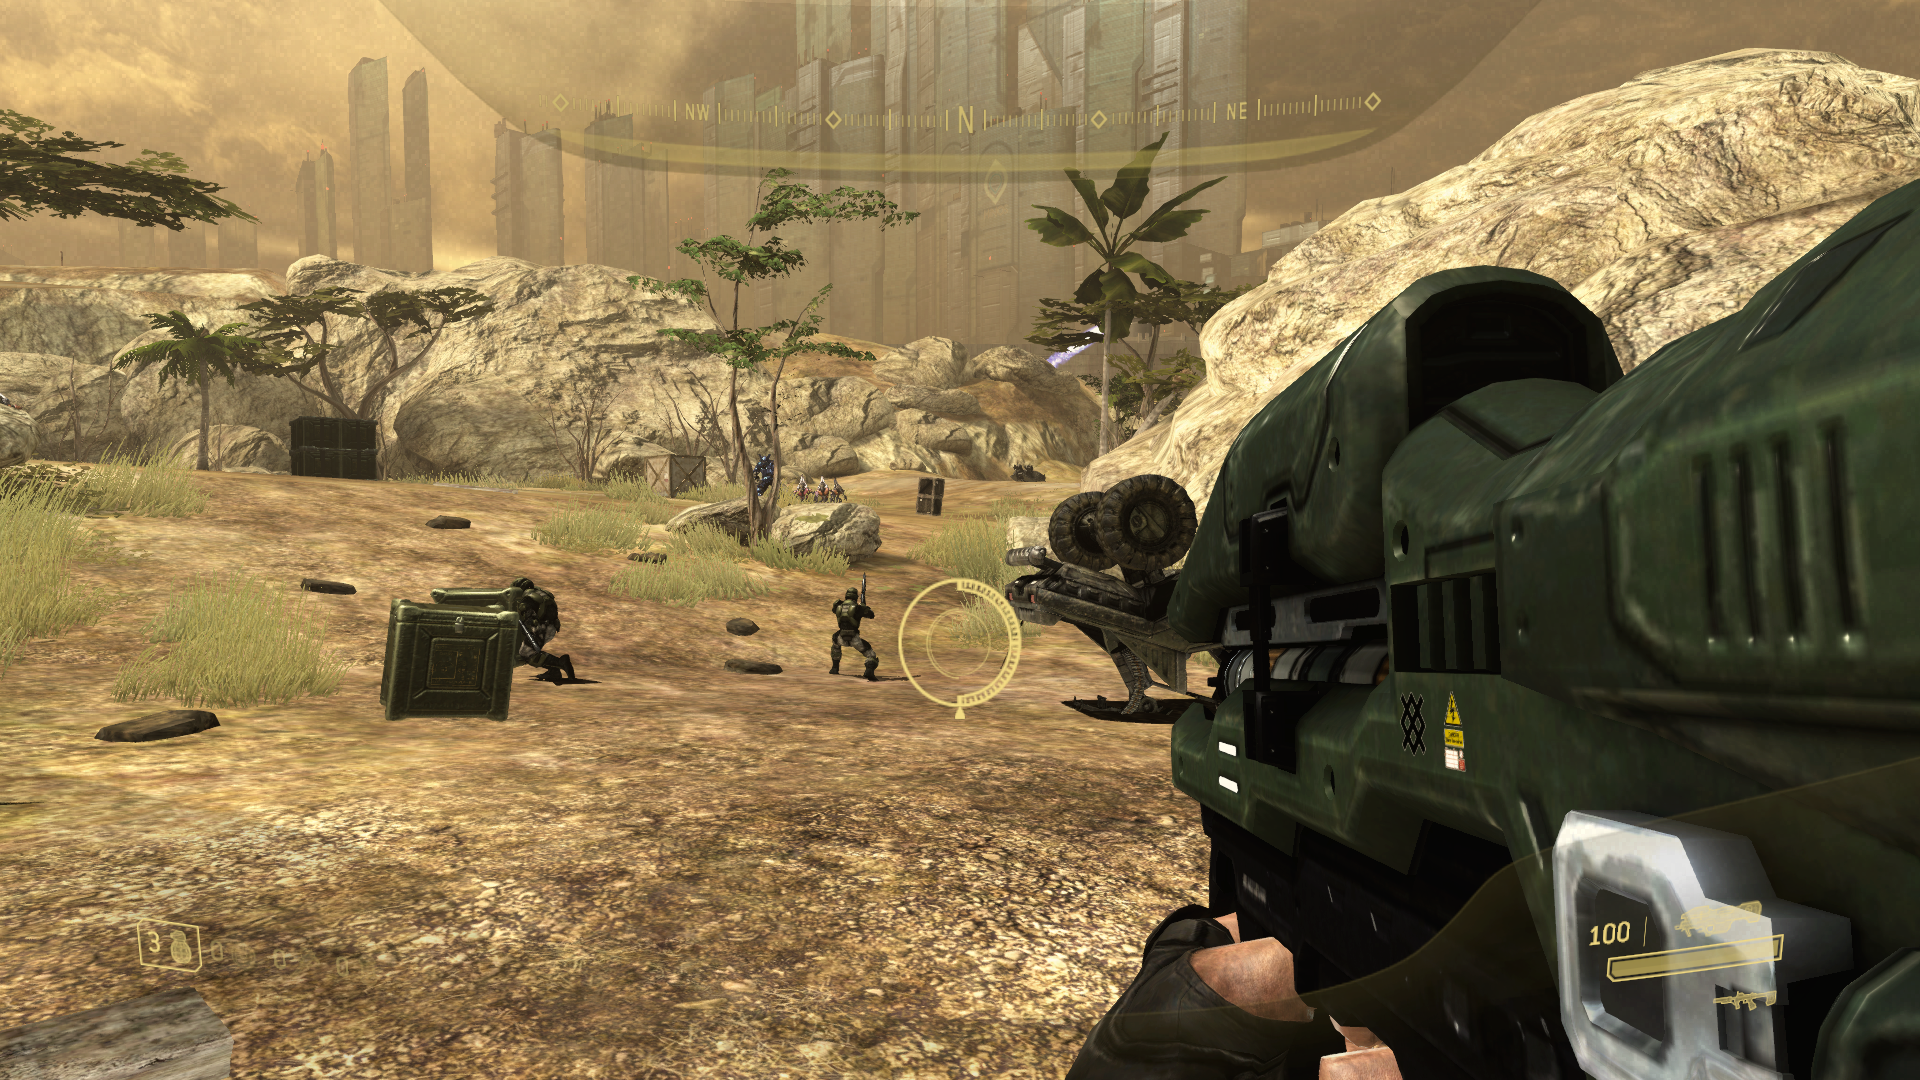 Halo: The Master Chief Collection - Halo 3: ODST Screenshots